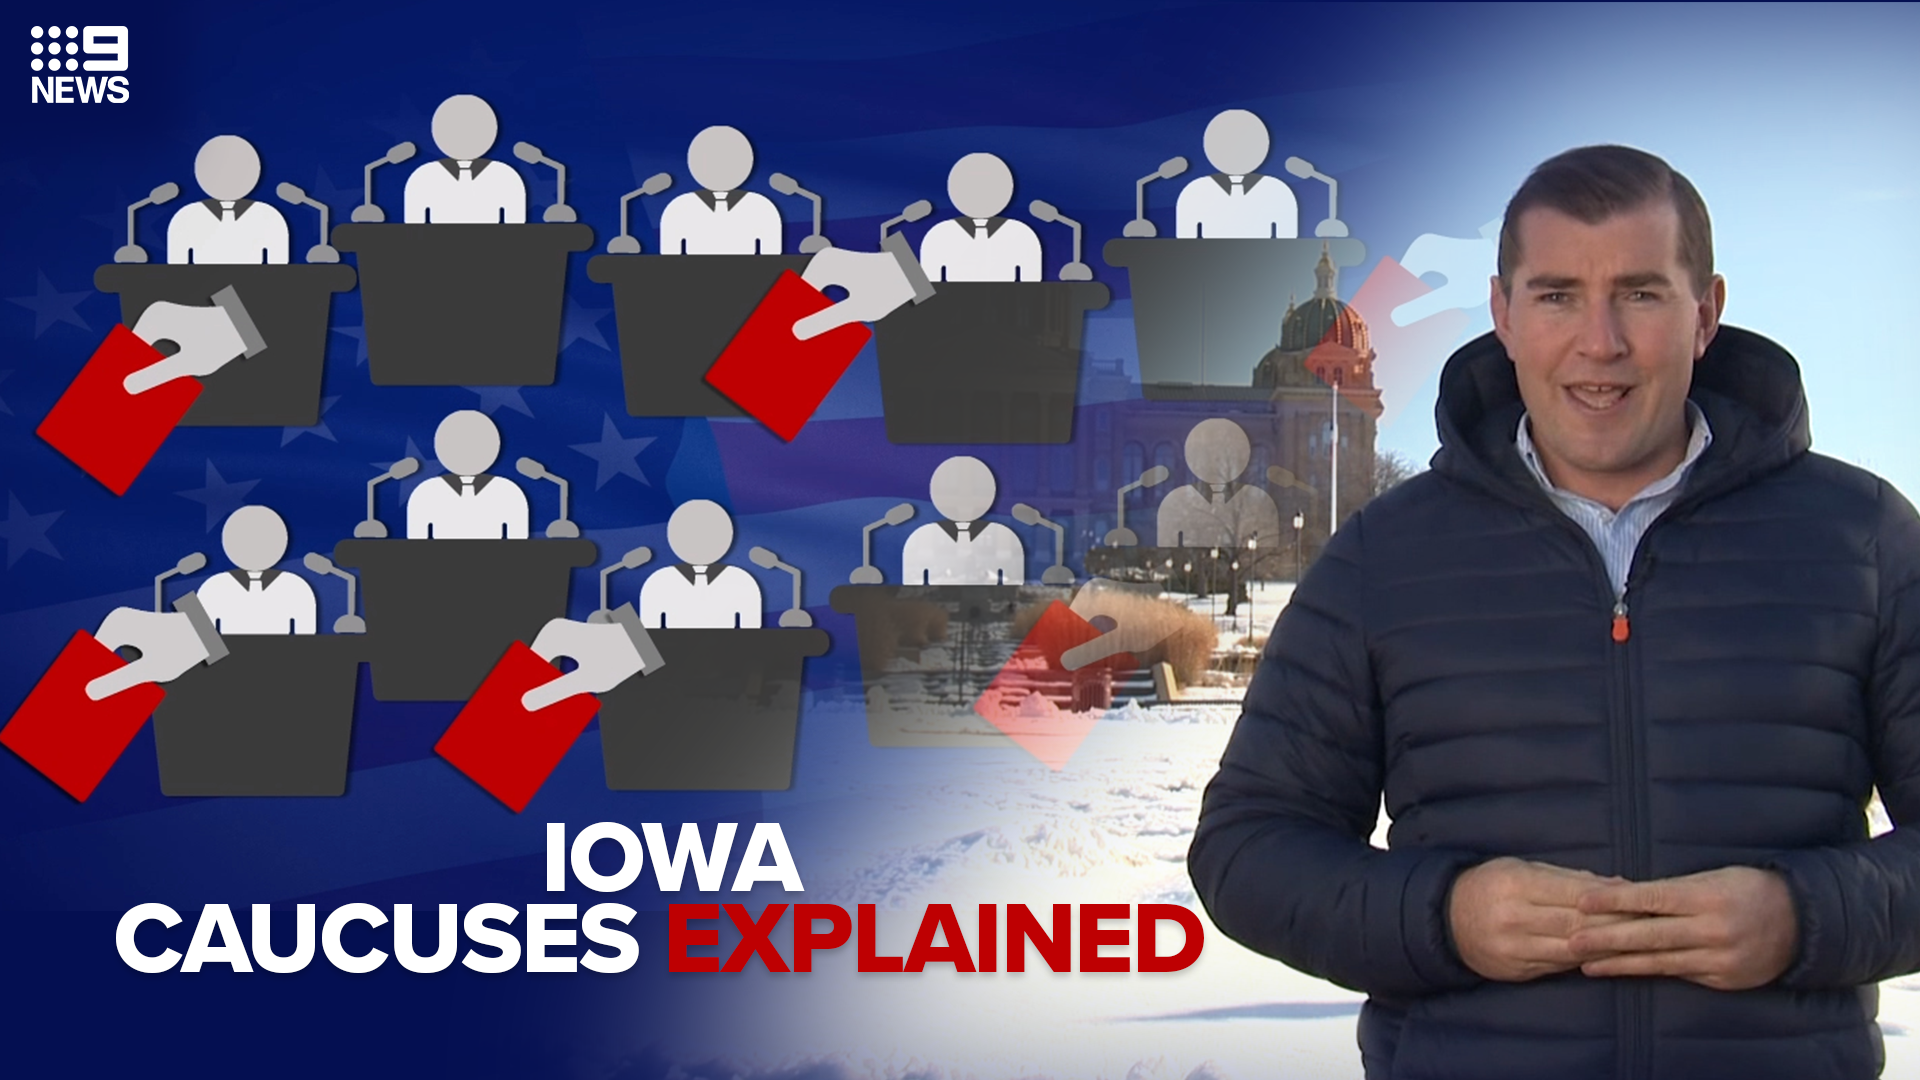 Reporting Issues Delay Iowa Caucus Results, Coronavirus Outbreak Strains Resources